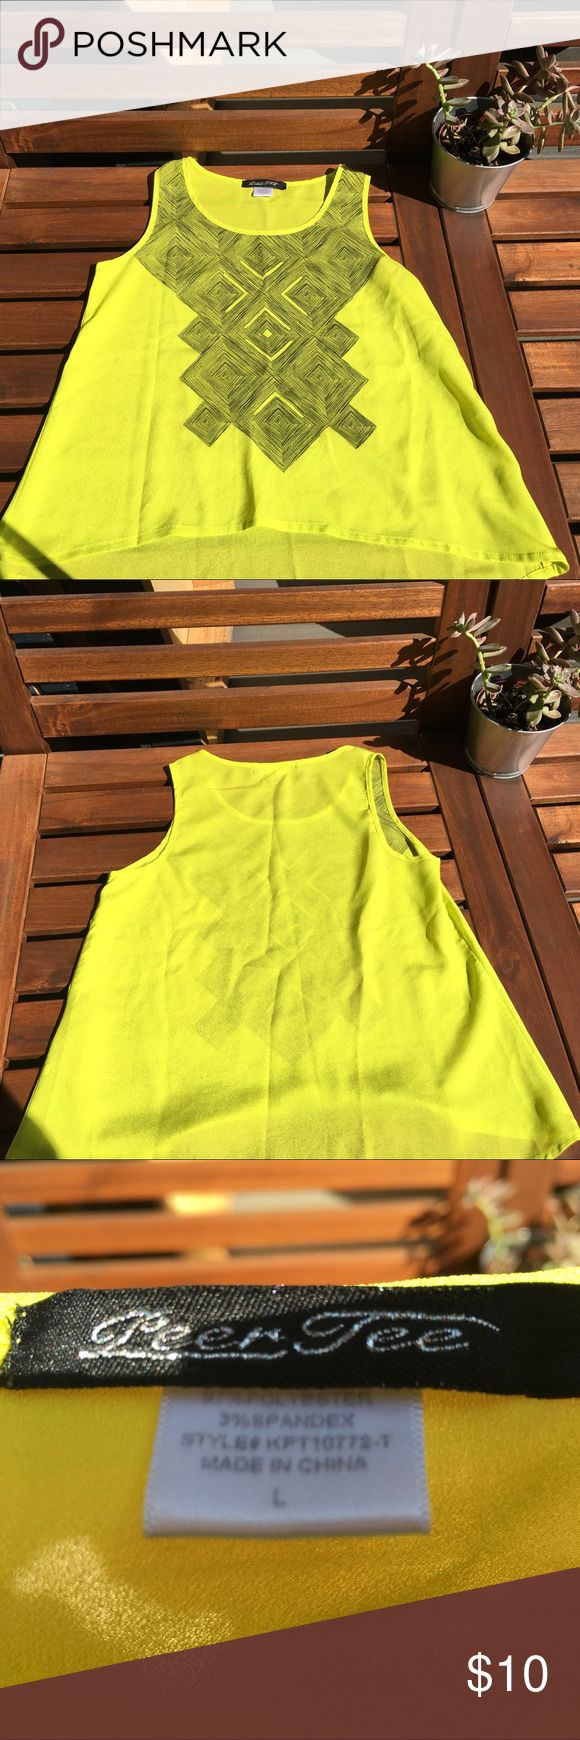 Girls Sheer Yellow Tank Top Really cute like new fluorescent yellow green with a black triangle pattern, tank top style and hi low, sheer so would recommend a Cami or tank top under. Purchased from Saks Fifth Ave peer tee Shirts & Tops Tank Tops